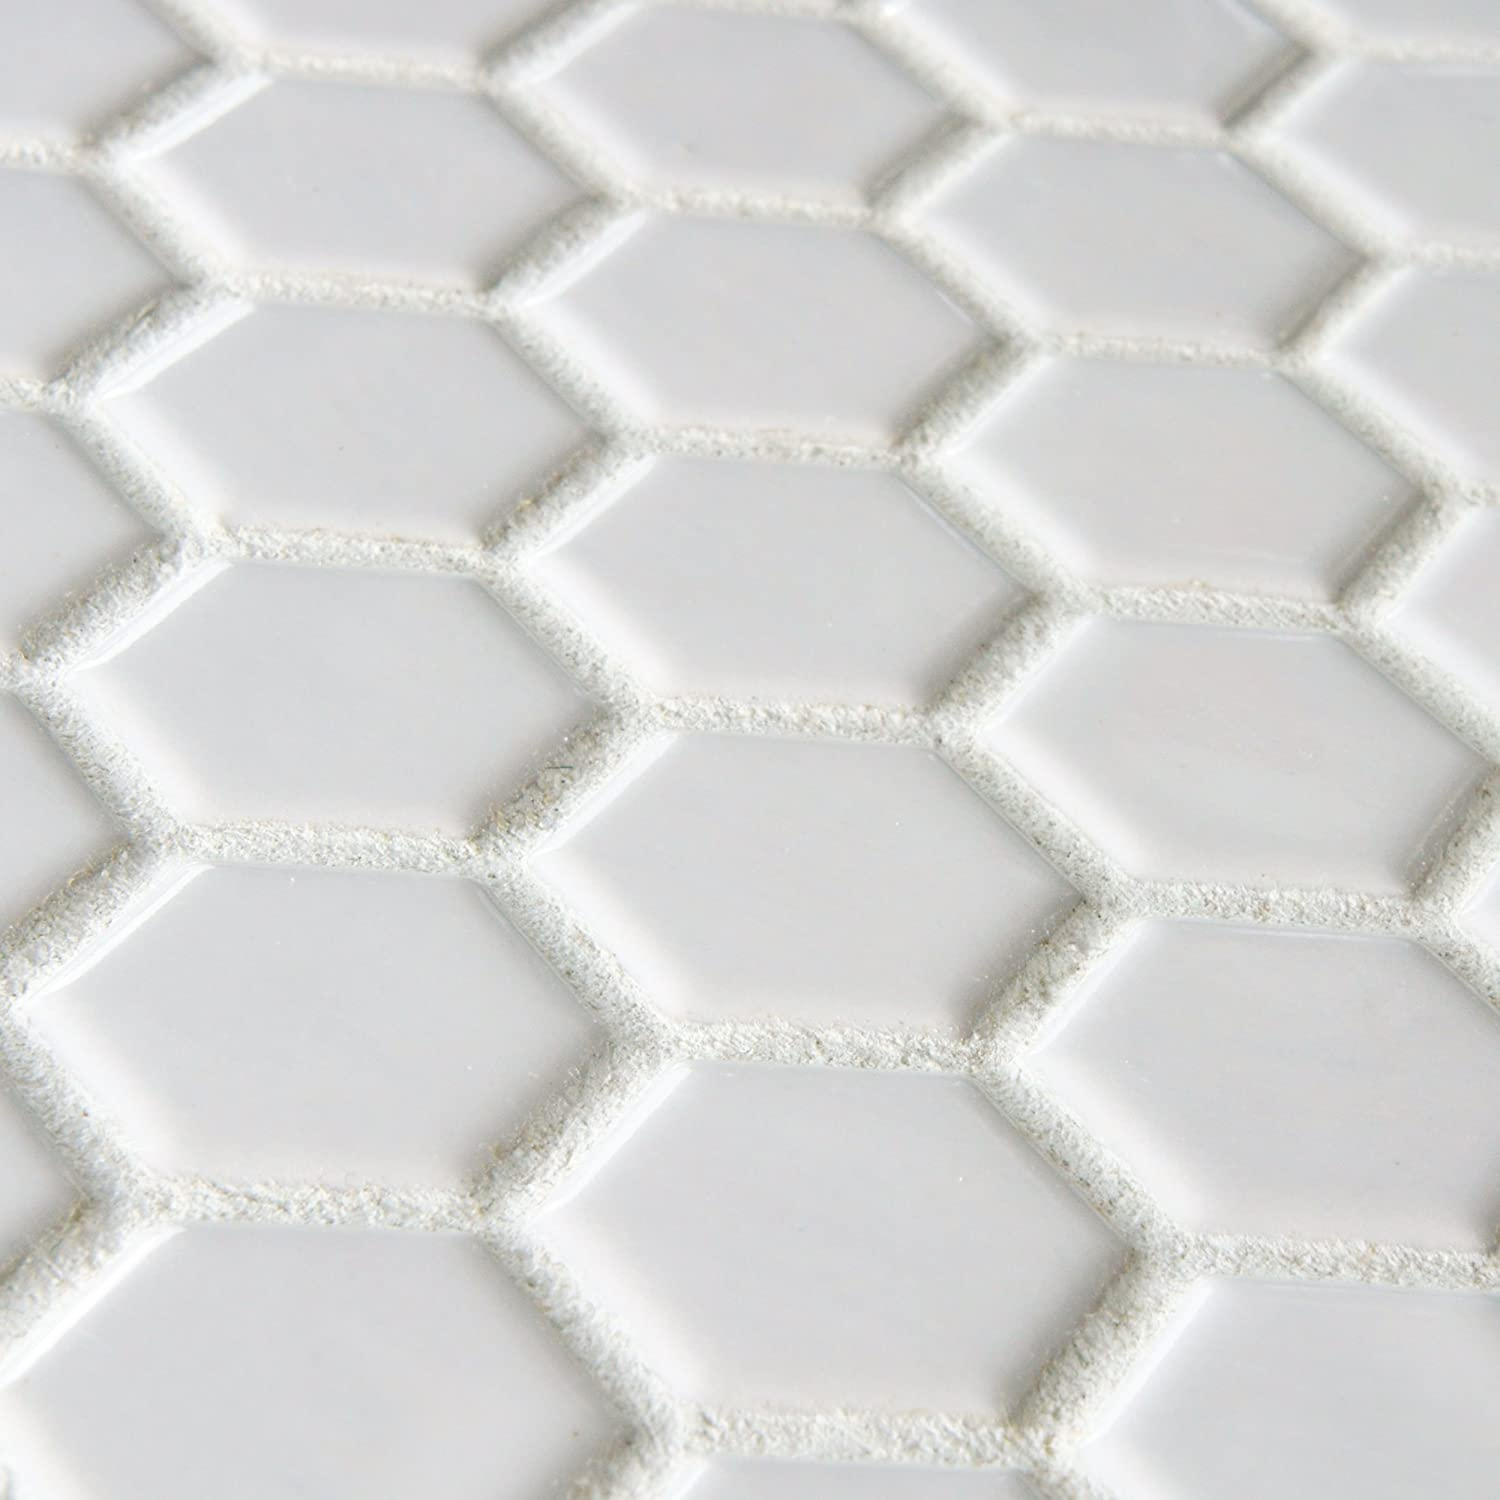 white porcelain tile floor. SomerTile FXLMHW Retro Hexagon Porcelain Floor and Wall Tile  10 25 x 11 75 White Ceramic Tiles Amazon com